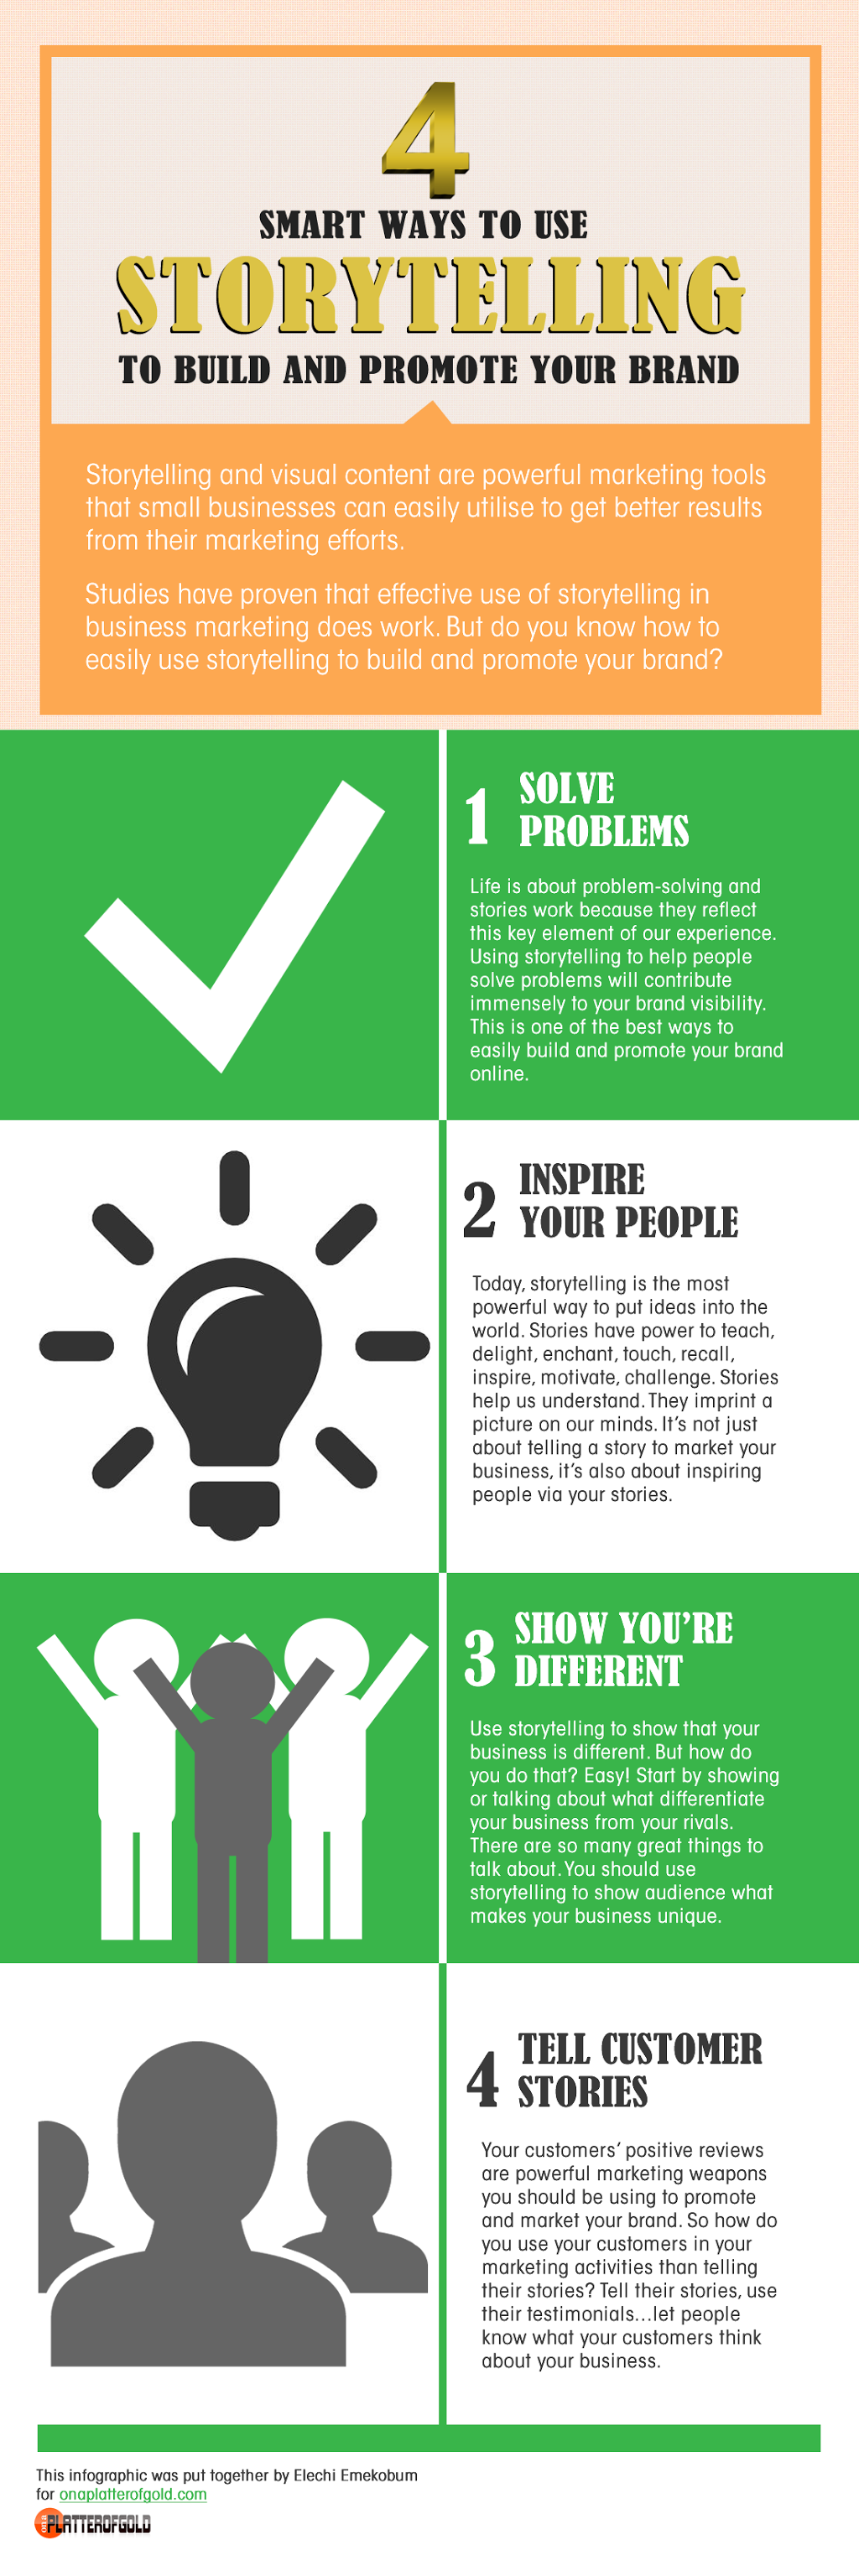 INFOGRAPHIC: 4 SMART Ways To Use Storytelling To Build And Promote Your Brand